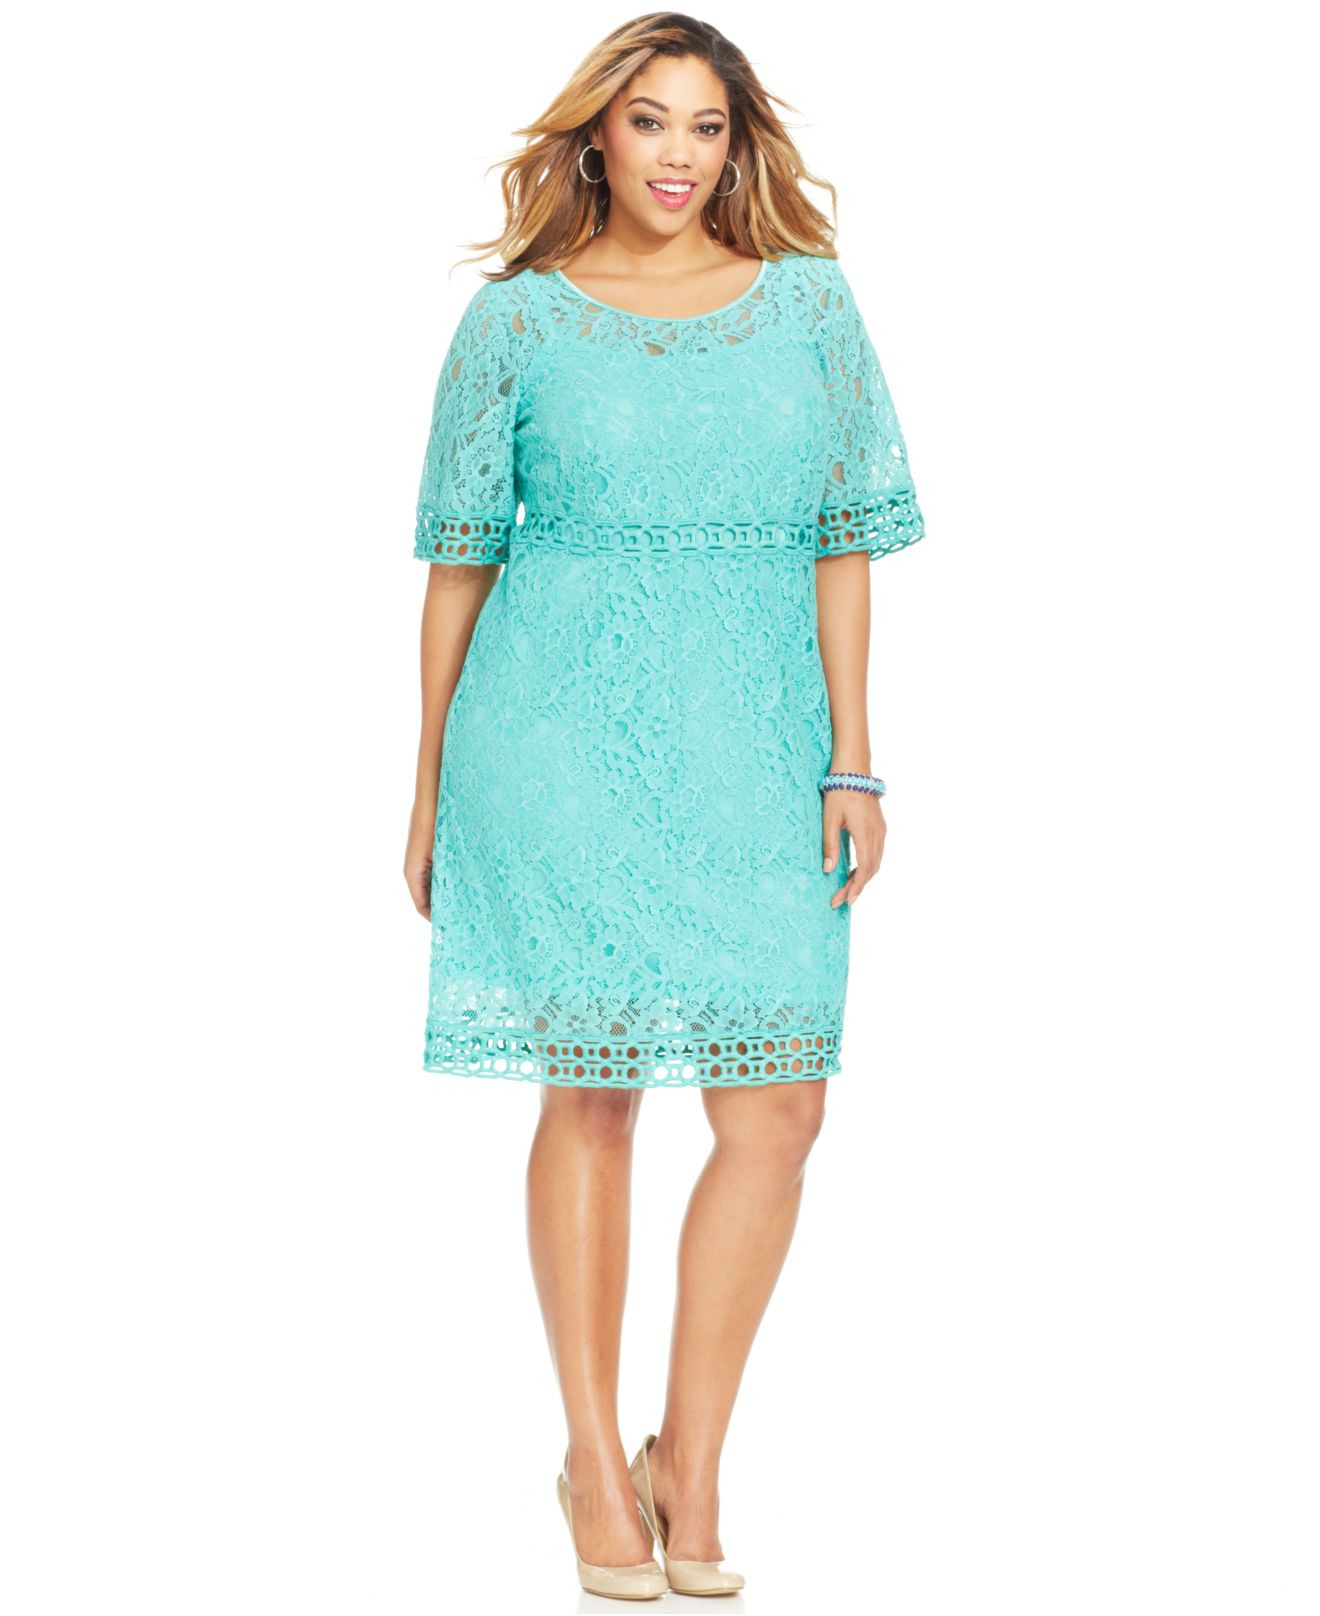 Awesome Crochet Lace Dress Plus Size Hairstyle for Women & Man Plus Size Crochet Dress Of Attractive 46 Ideas Plus Size Crochet Dress